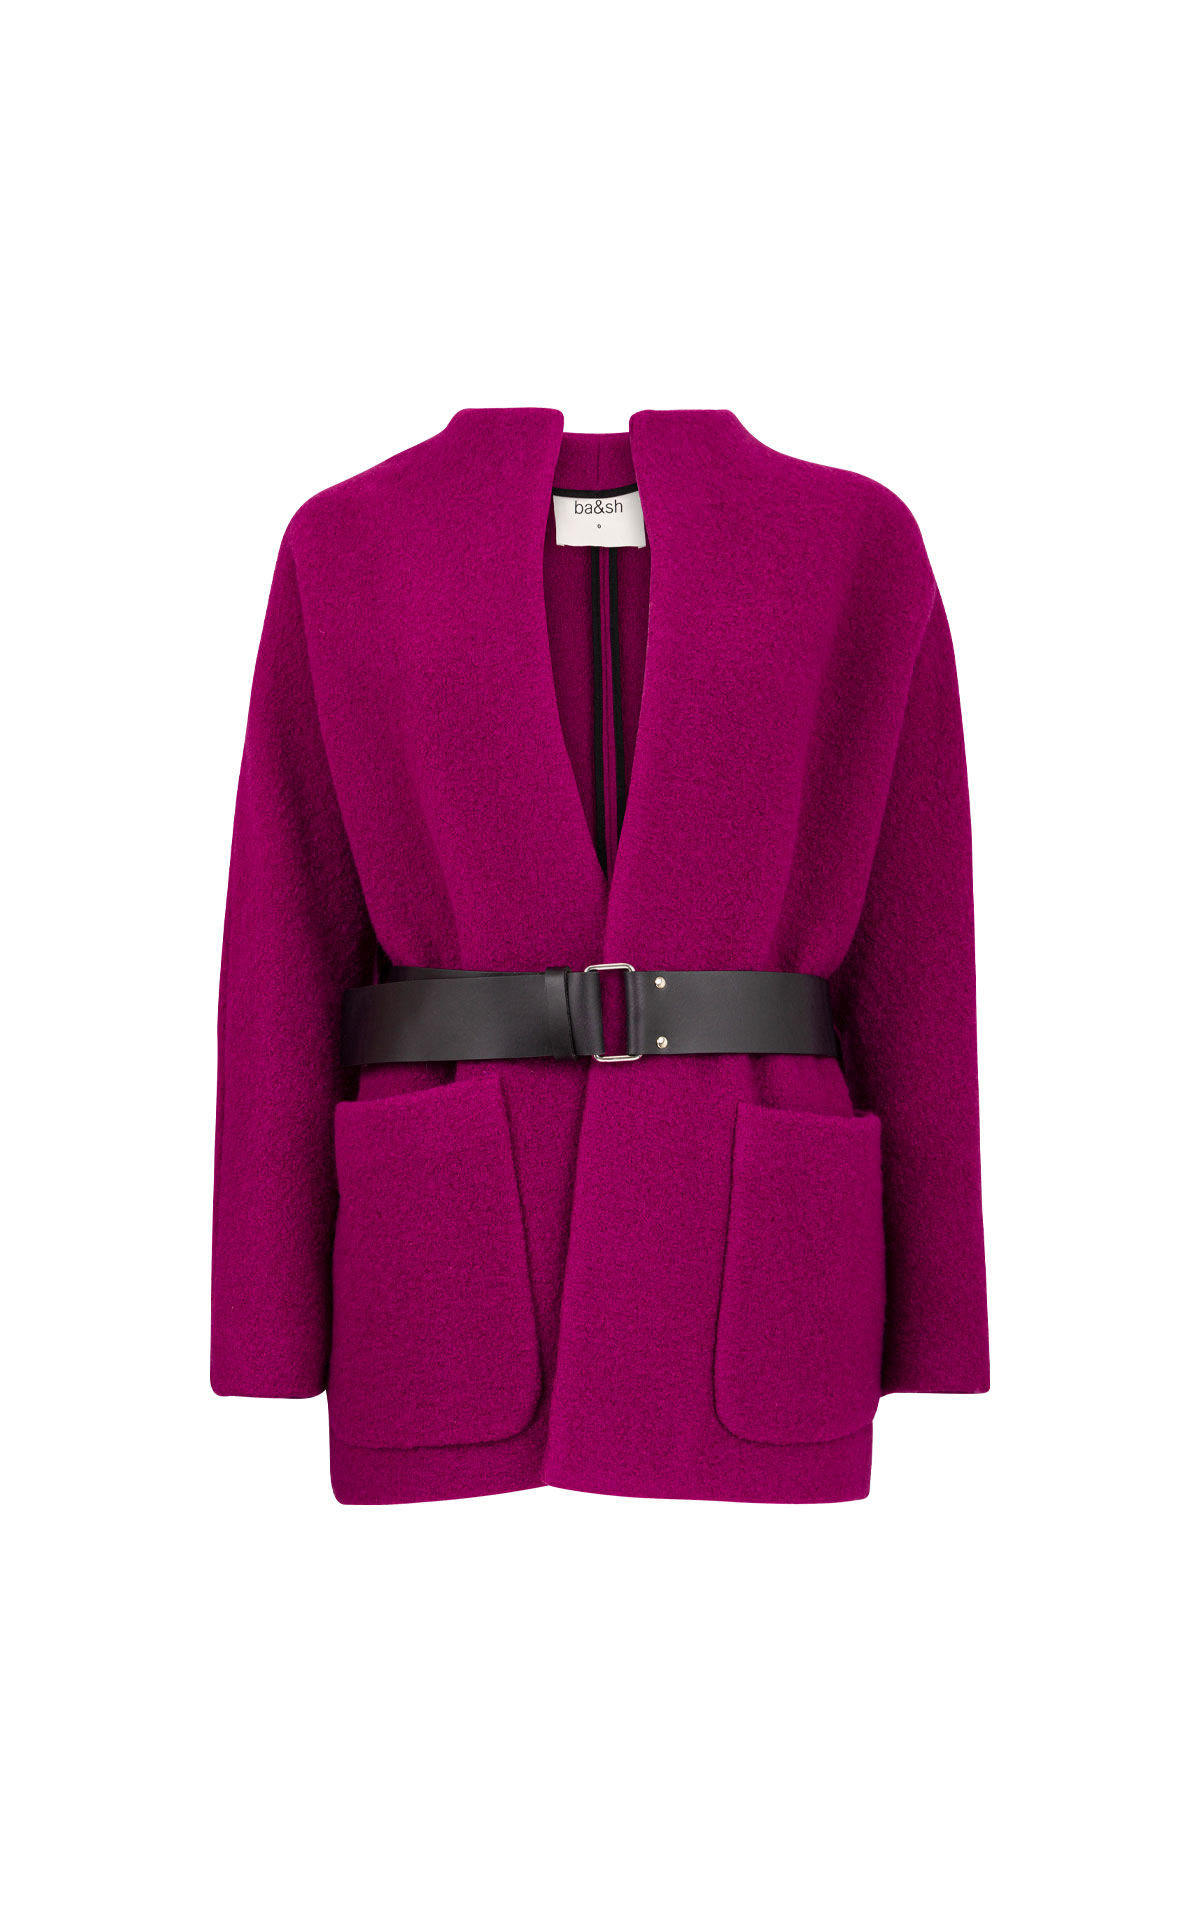 ba&sh coat purple